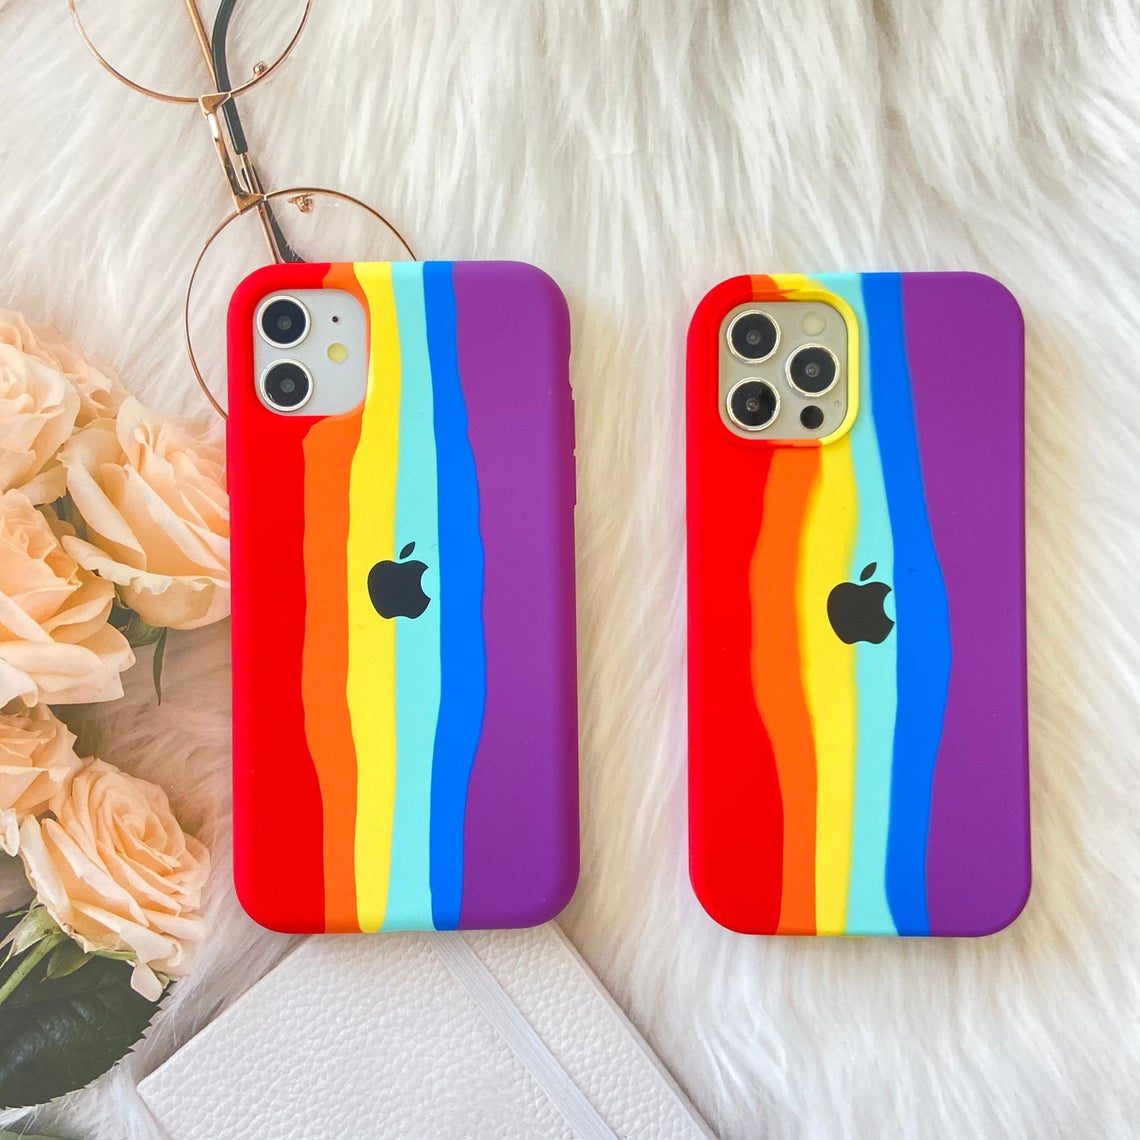 Handcrafted Creative Liquid Rainbow Silicon Cases For Apple IPhone 12 / 12 Pro / 12 Pro MAX (iPhone 12 Mini)